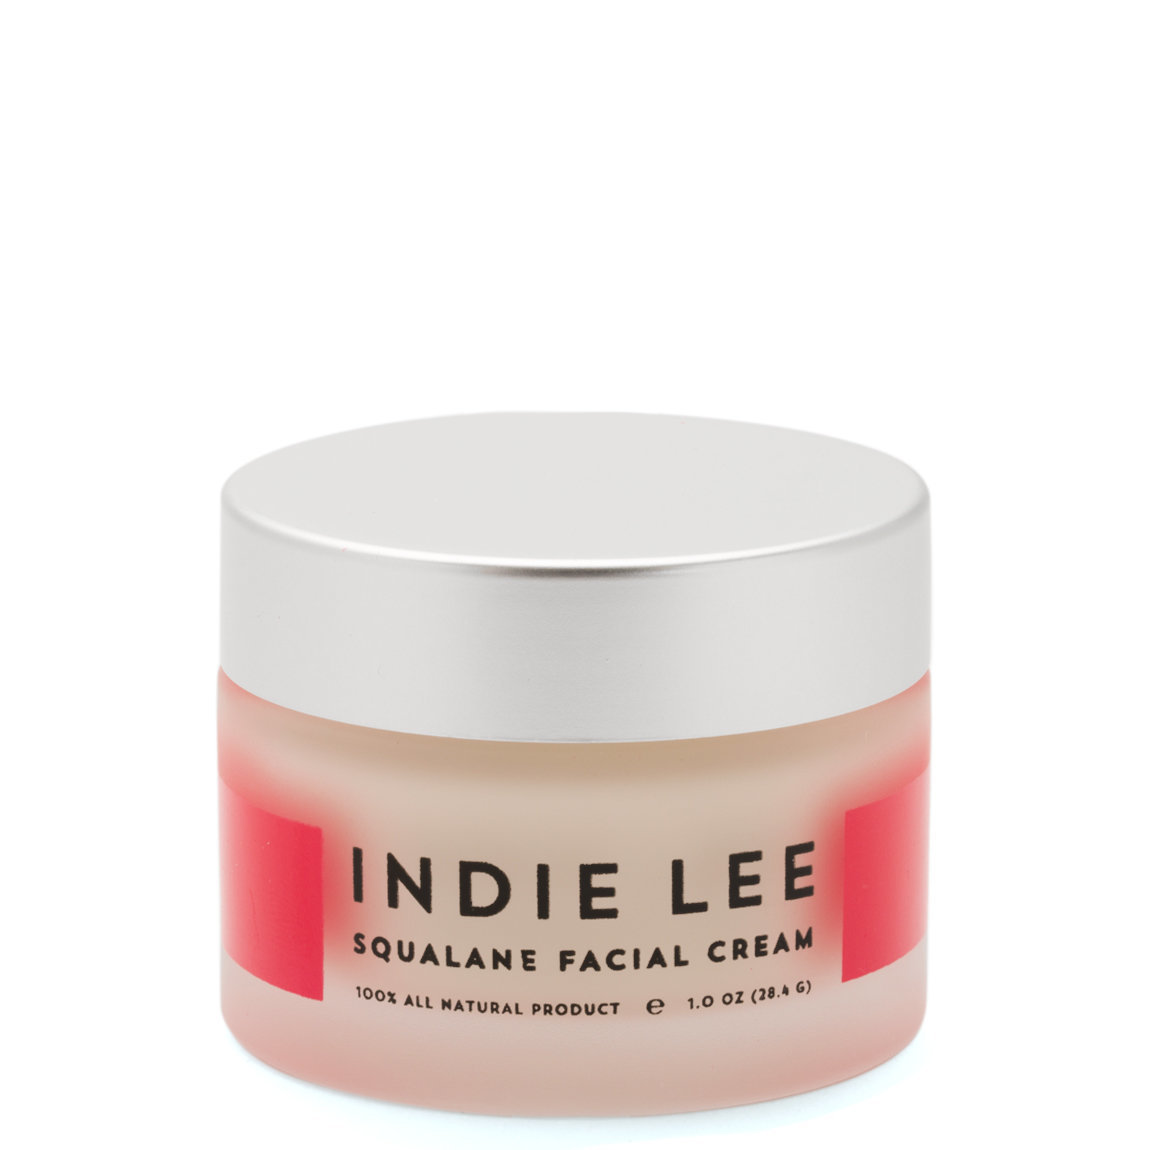 Indie Lee Squalane Facial Cream product smear.